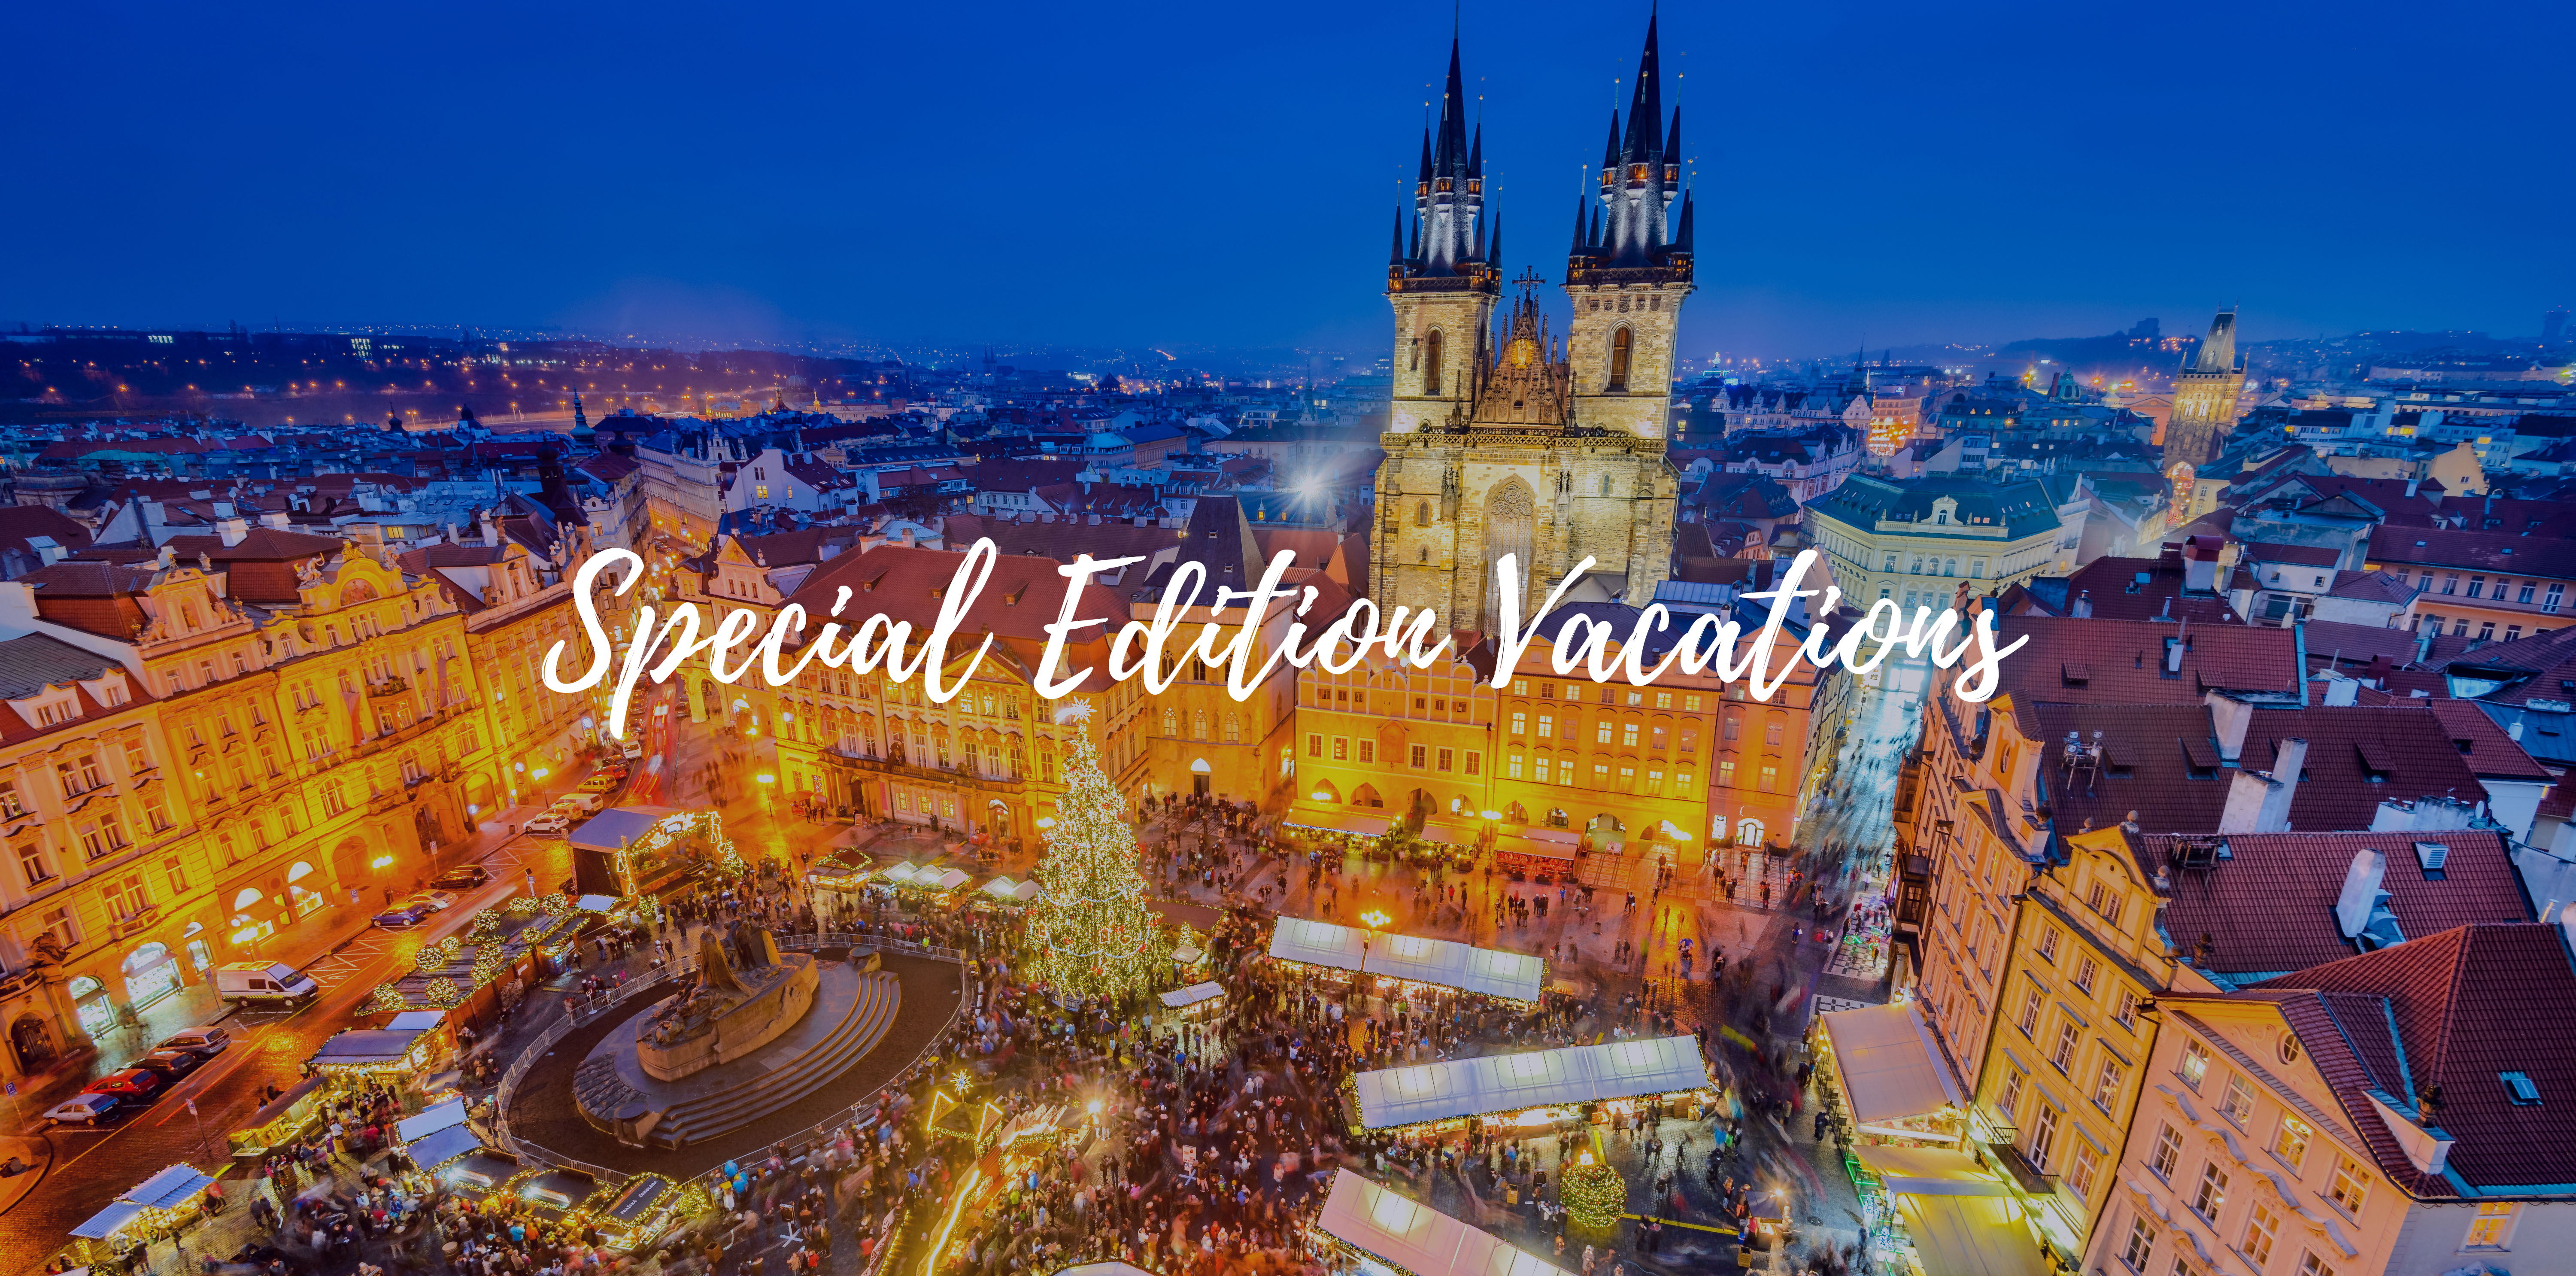 Europe Czech Republic Prague Old Town Square decorated for traditional Christmas market - luxury vacation destinations